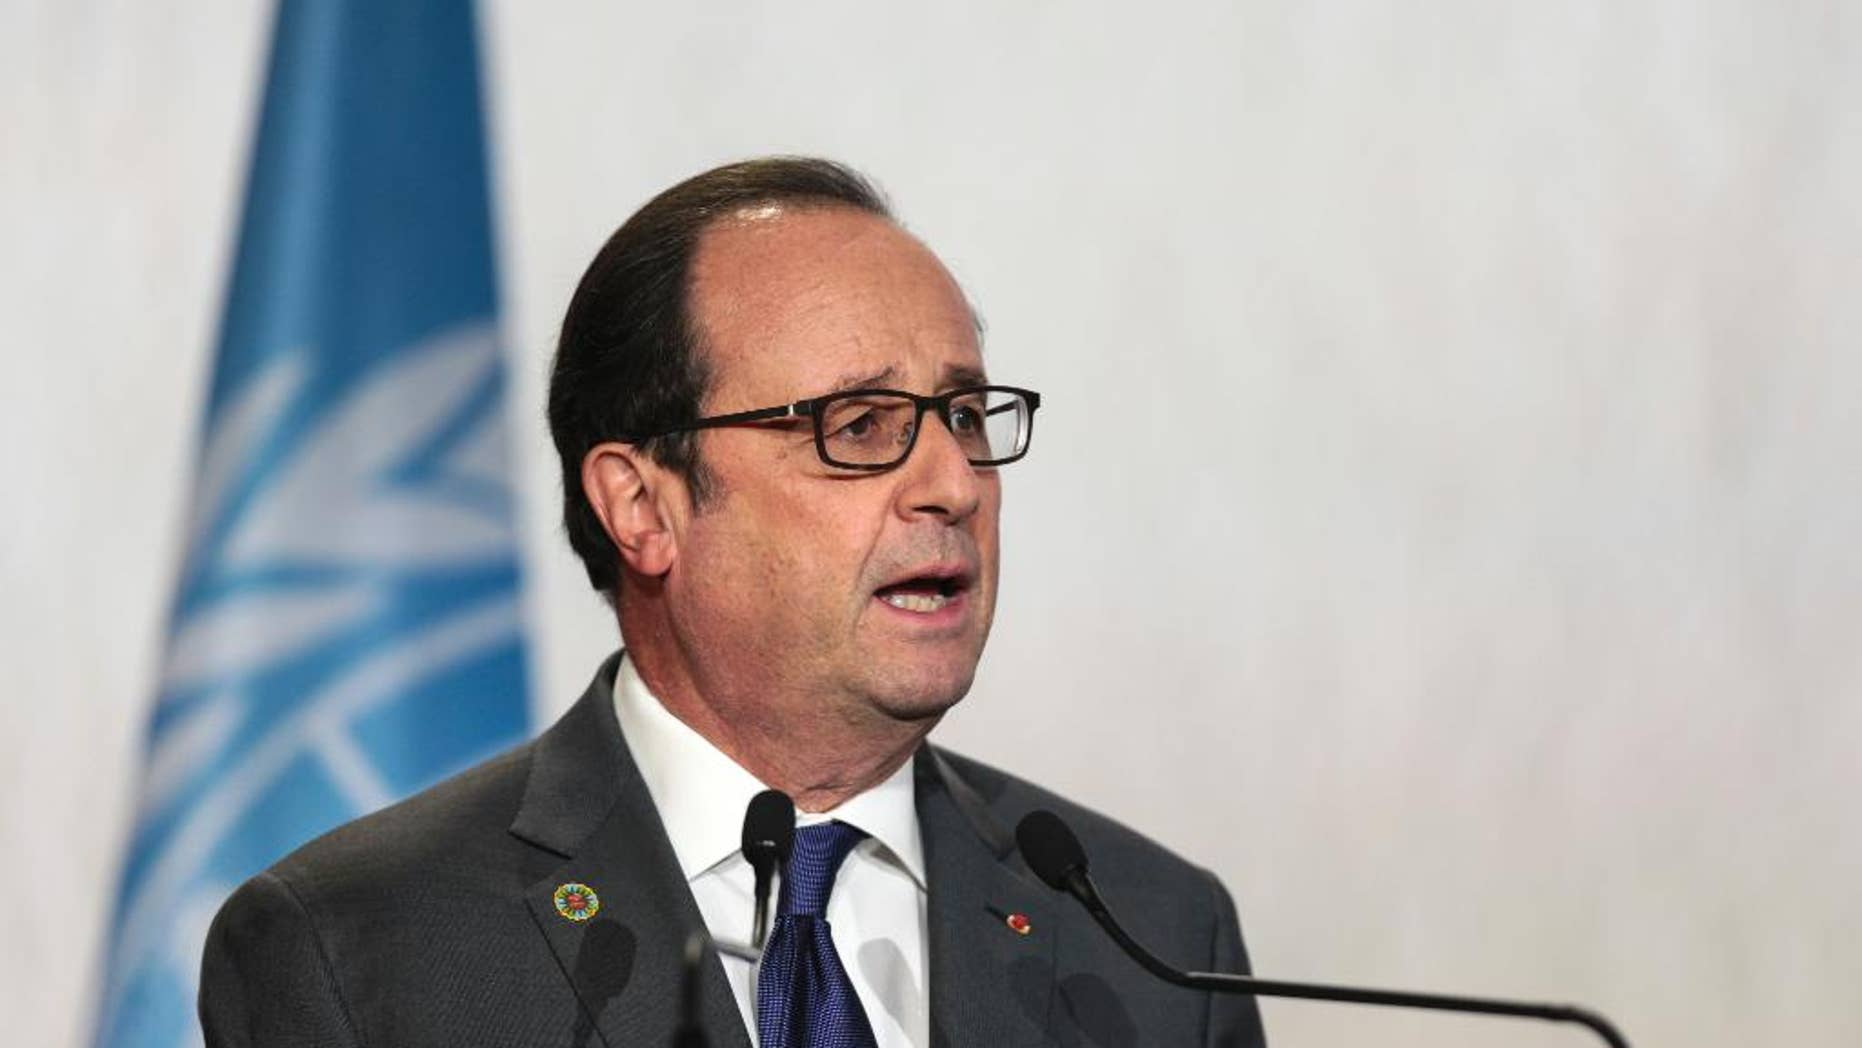 """France's President Francois Hollande speaks during the opening session of the high level segment of the U.N. climate climate conference in Marrakech, Morocco, Tuesday, Nov. 15, 2016. Hollande on Tuesday urged the United States to respect the """"irreversible"""" Paris Agreement on climate change, and said France will lead a dialogue on the topic with President-elect Donald Trump """"on behalf of the 100 countries that have ratified"""" the deal. (AP Photo/Mosa'ab Elshamy)"""